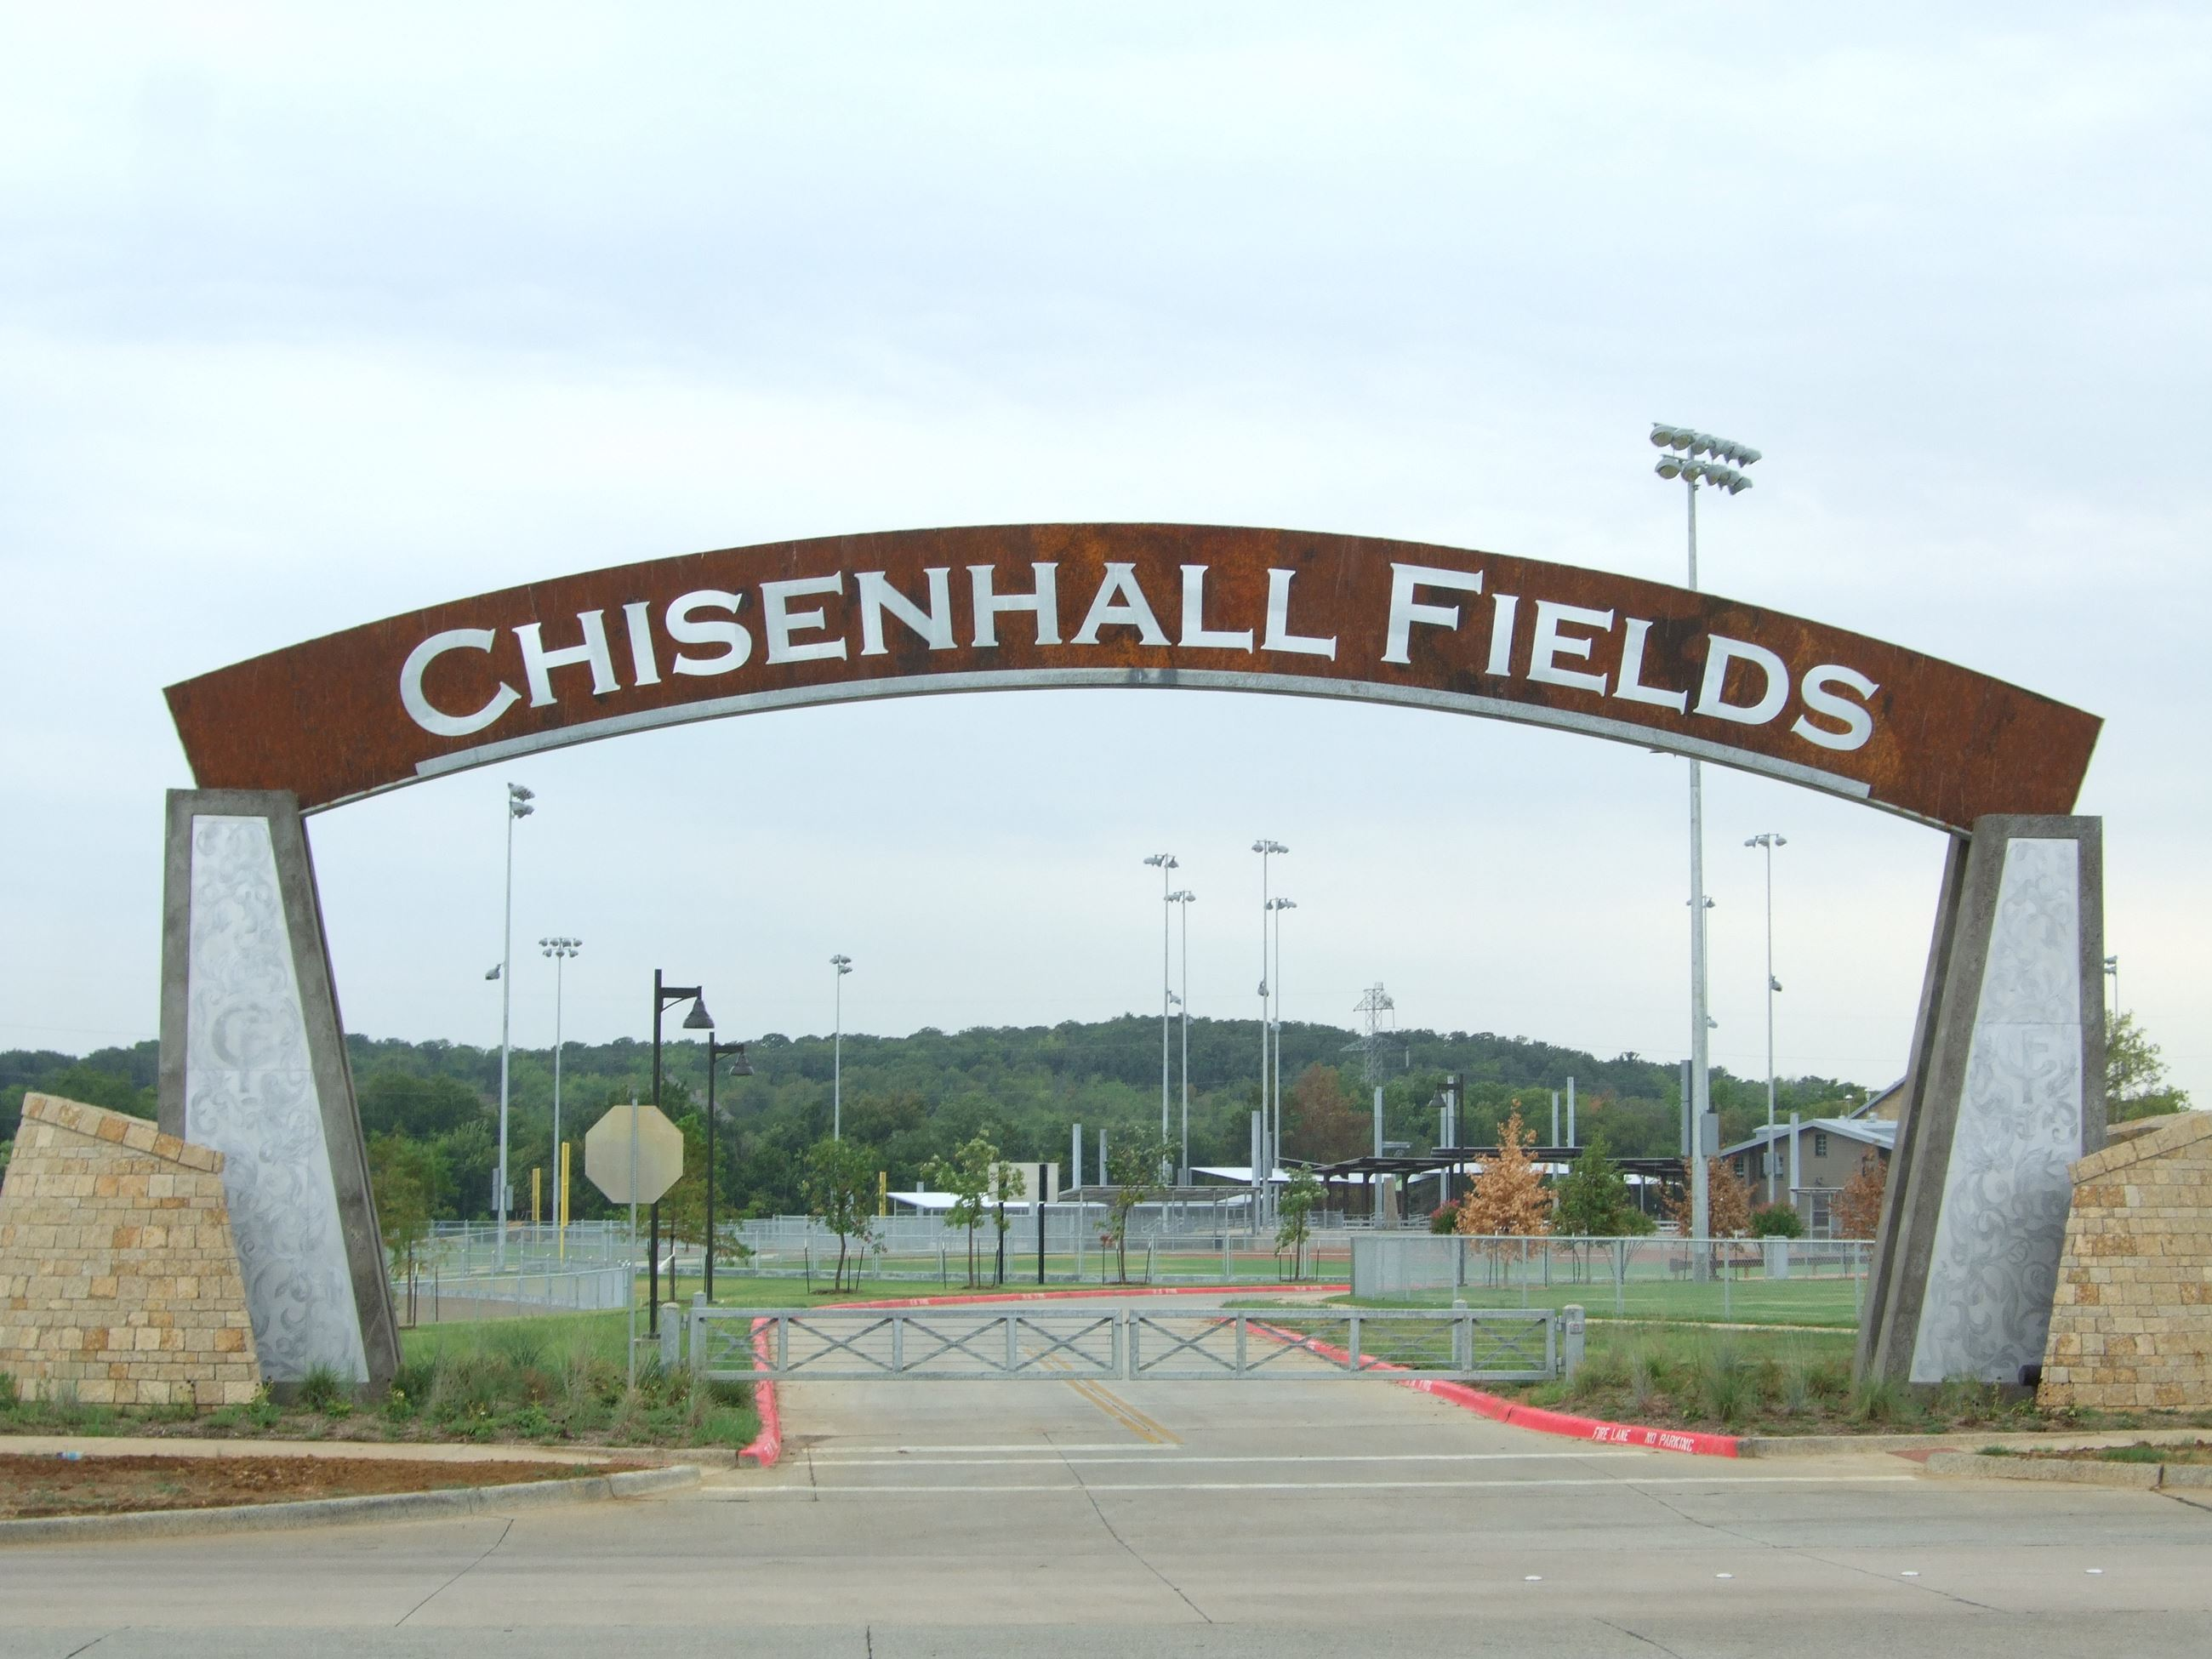 Chisenhall Fields arched entry sign - H